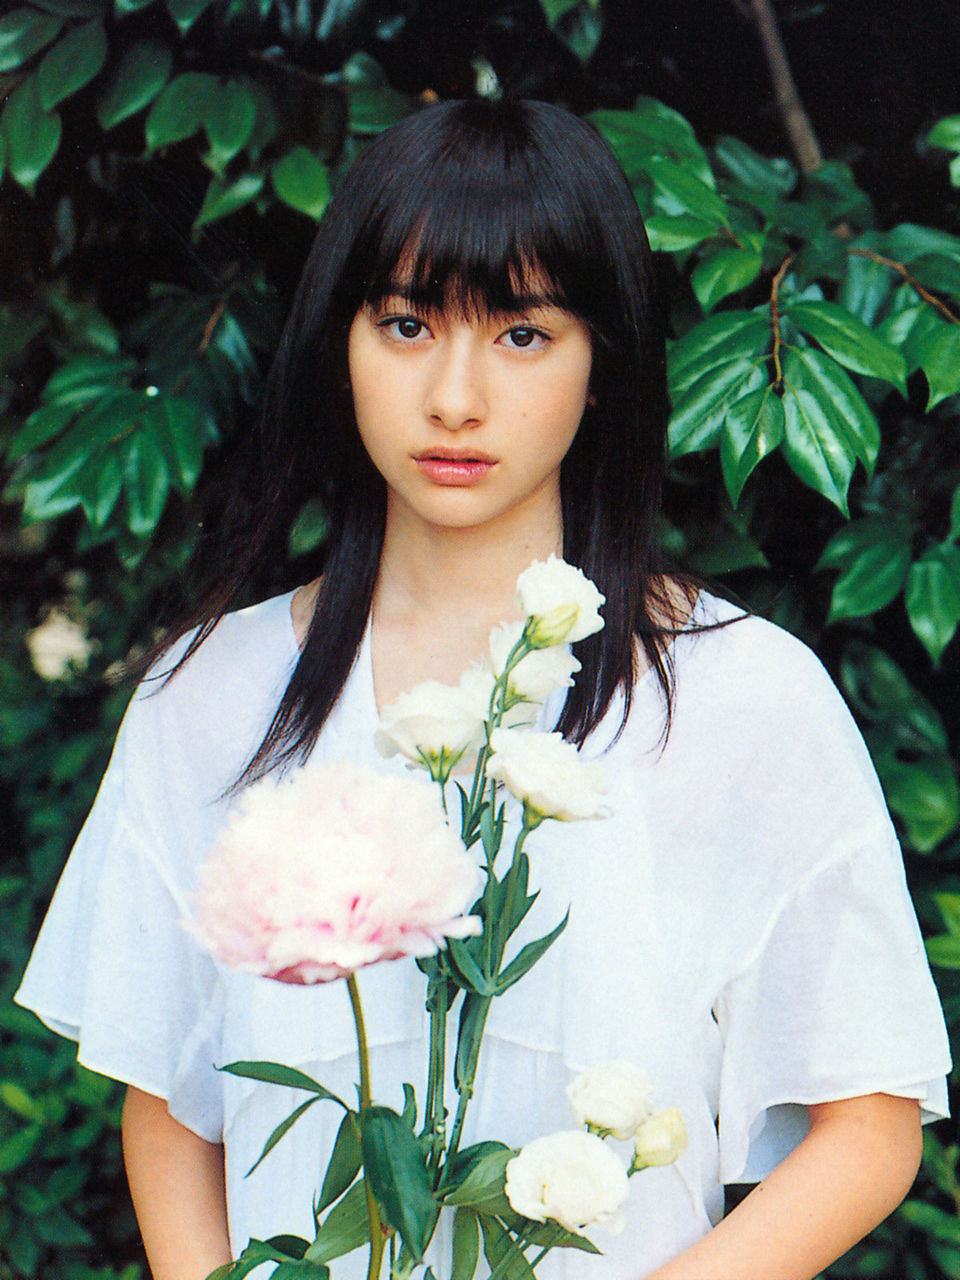 Sexy Actress Akari Hayami Street Photo #33 - Birthday: 1995-3-17 ( Pisces ) Age: 23, Height: 165cm , Weight: 46kg, Blood Type: A; Movies: Koisaika Miyamoto; Gintama; Wasurenai to chikatta boku ga ita